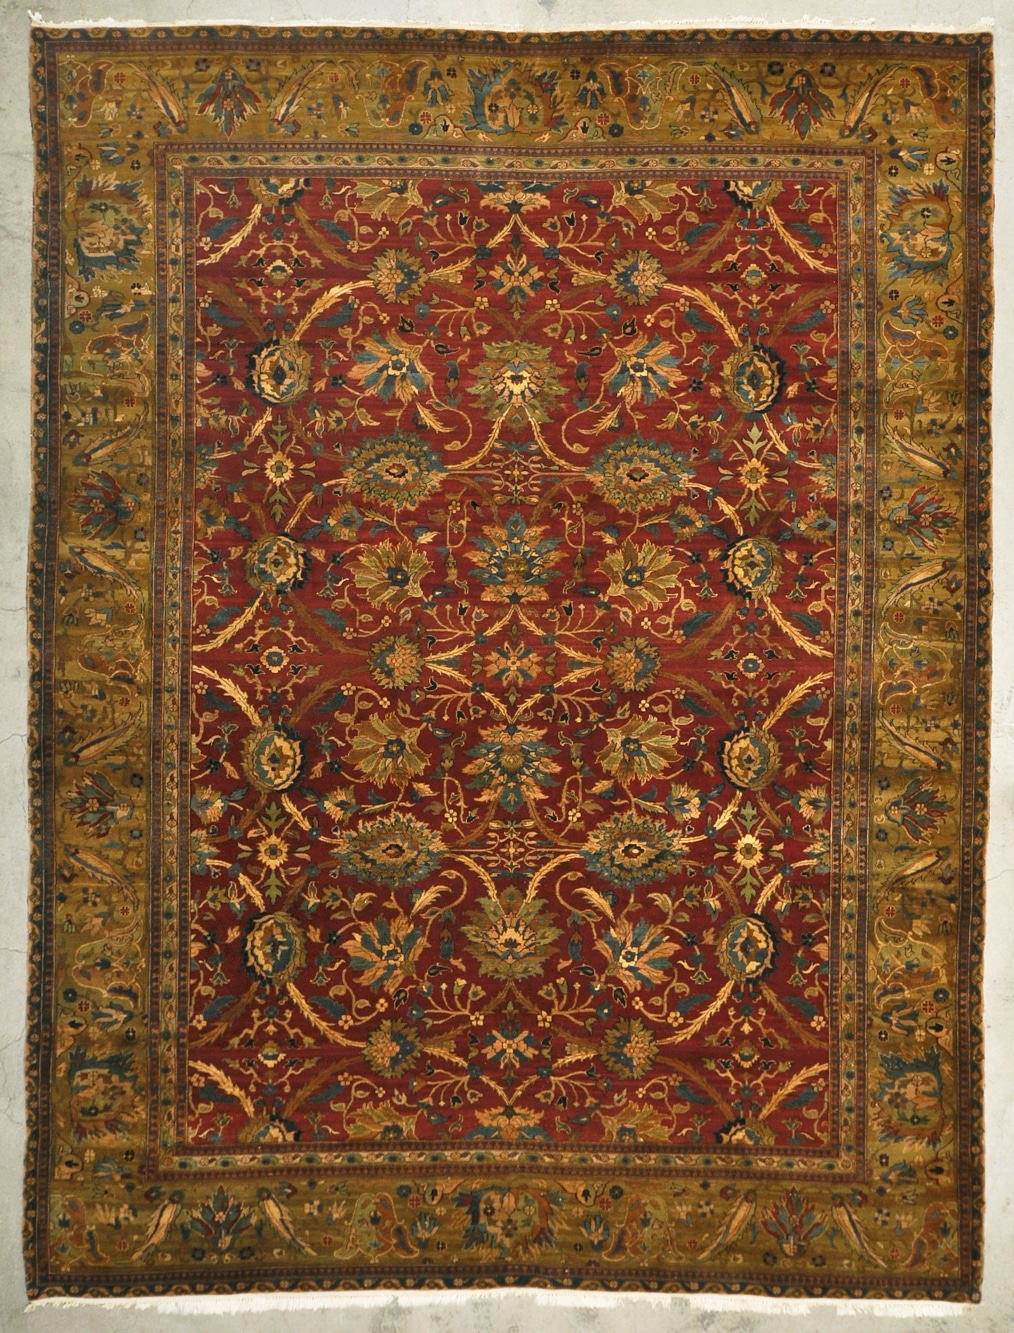 Ziegler & Co Mughal rugs and more oriental carpet 33873-